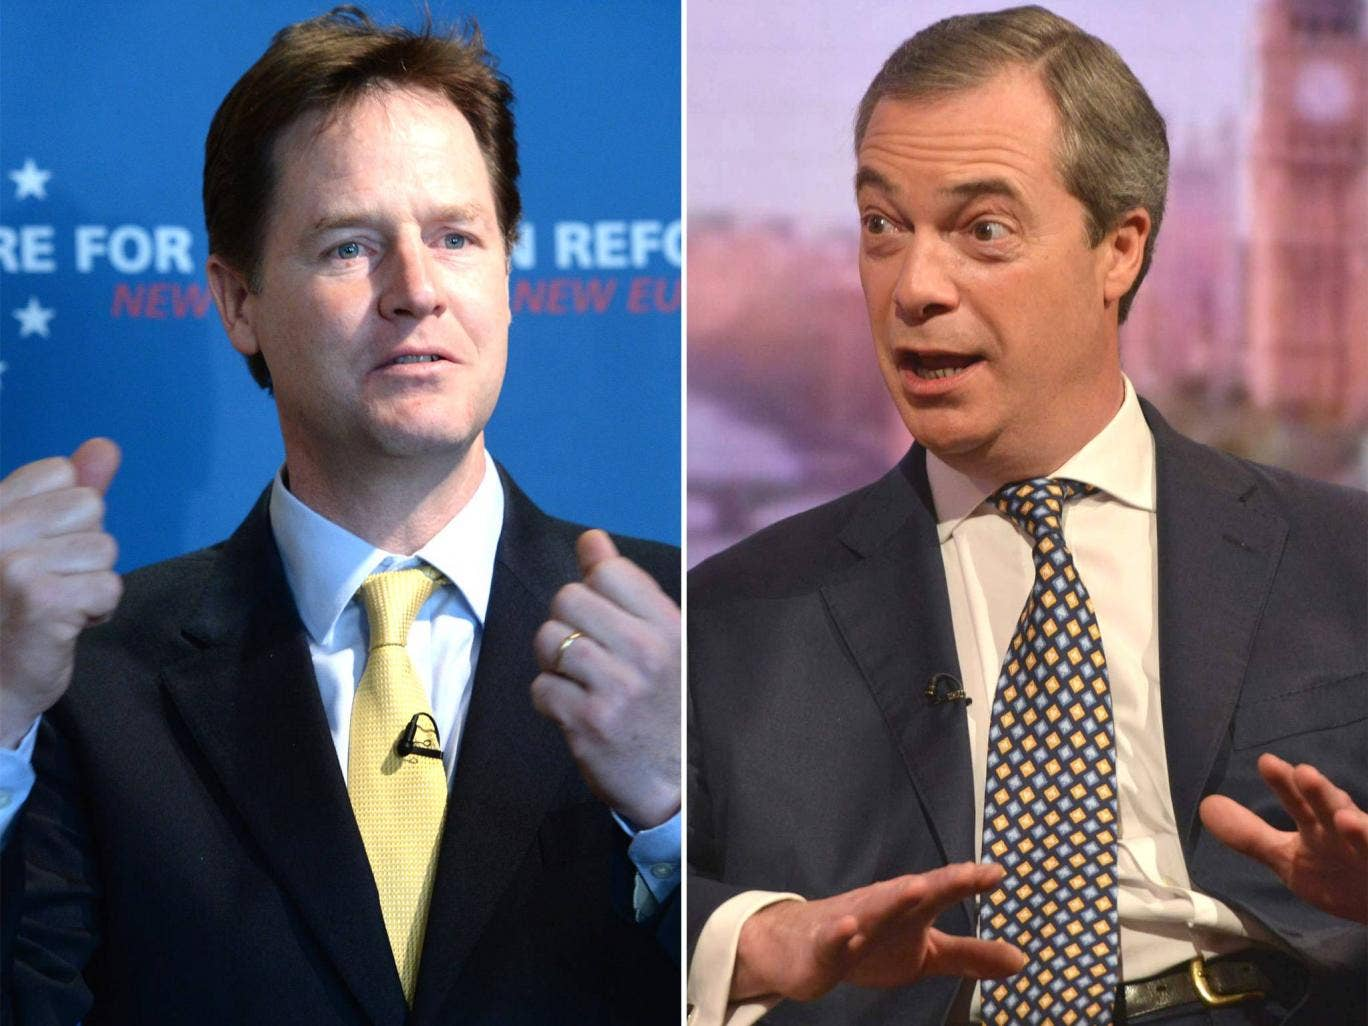 Nick Clegg and Nigel Farage have already begun the verbal sparring